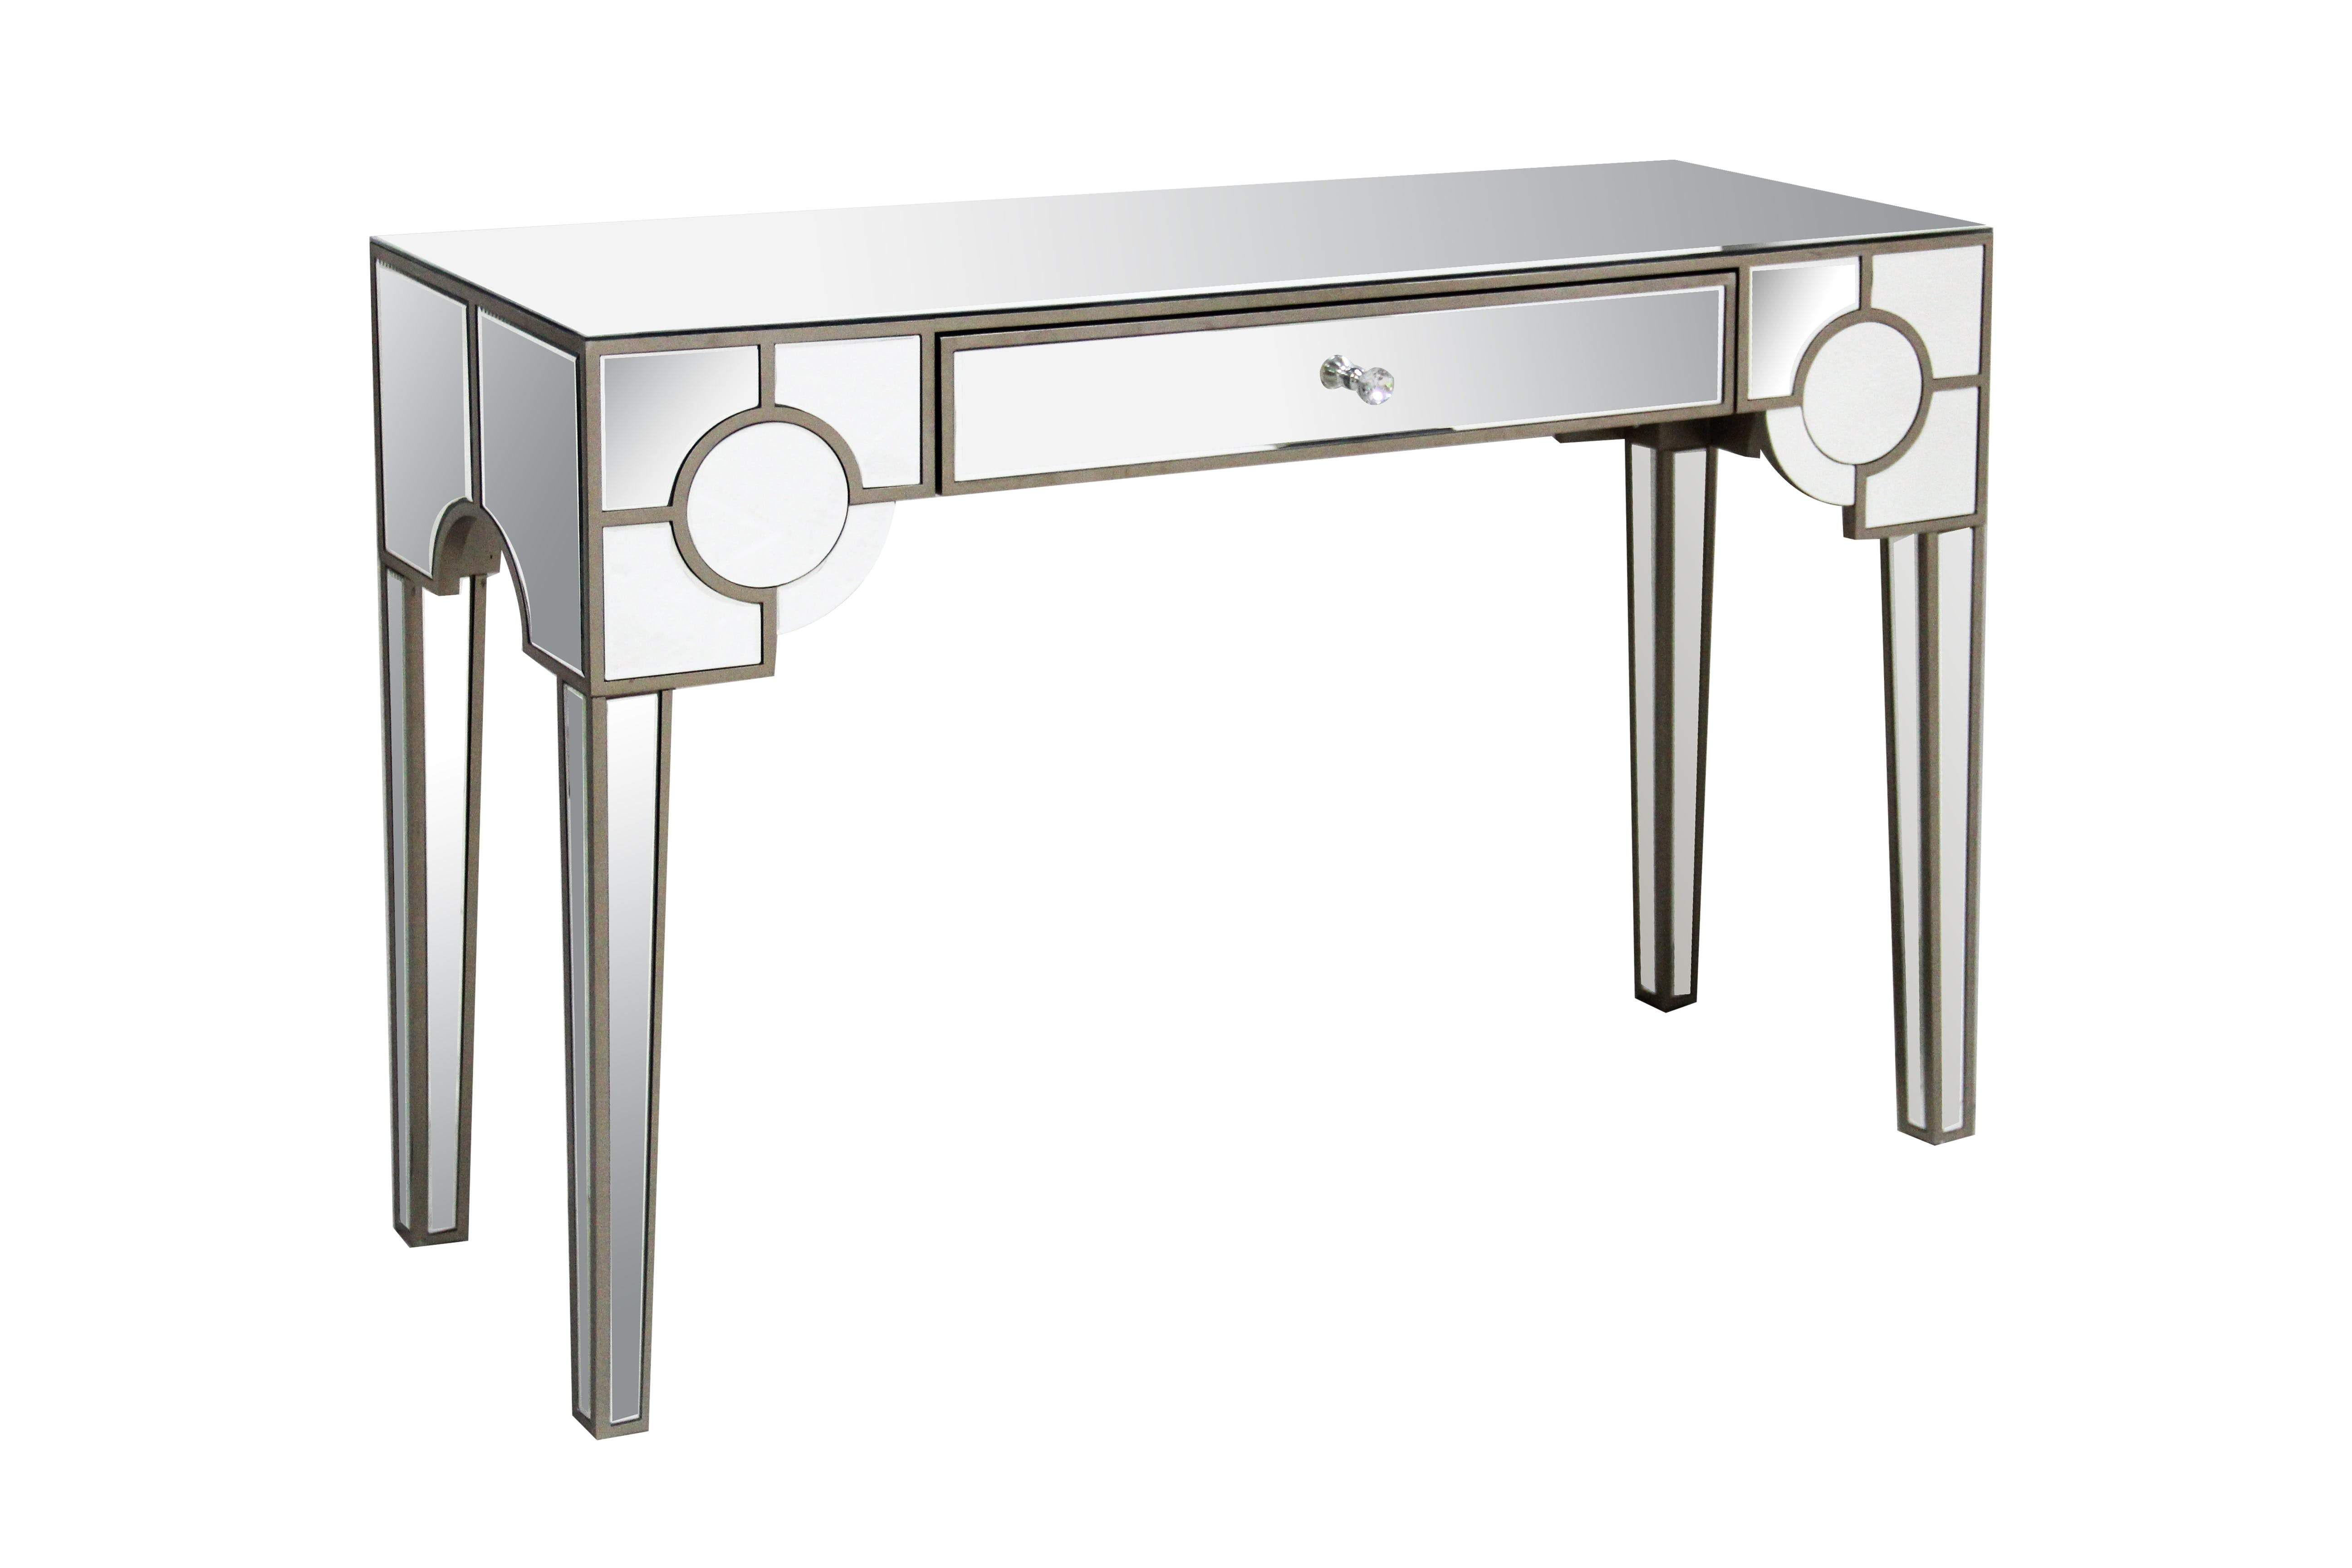 Mirrored Console Table With One Drawer Clear In 2020 Mirrored Console Table Mirror Console Console Table